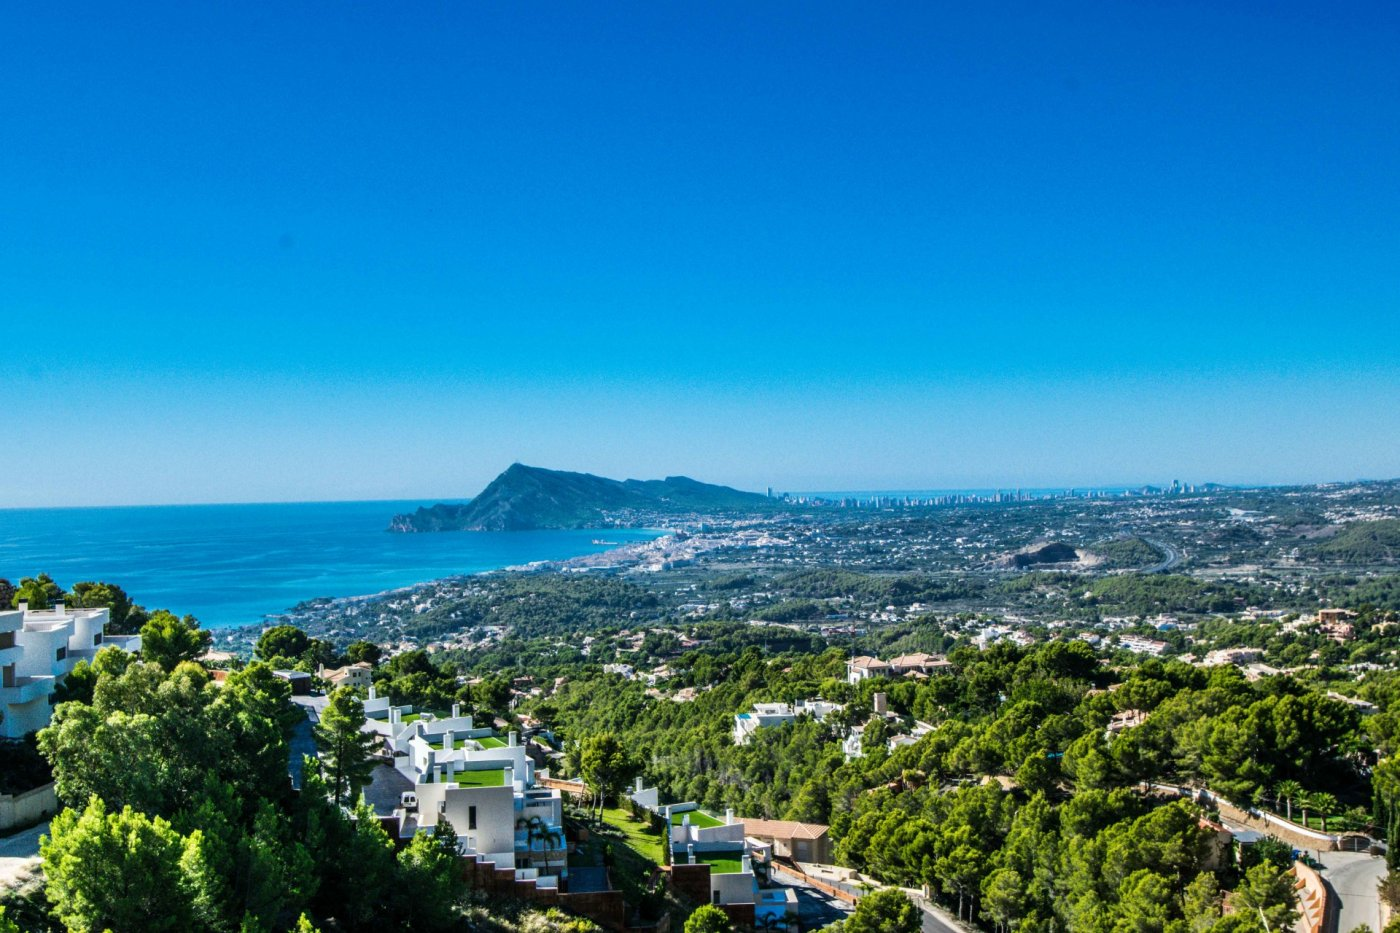 4 Bedroom Town house in Altea